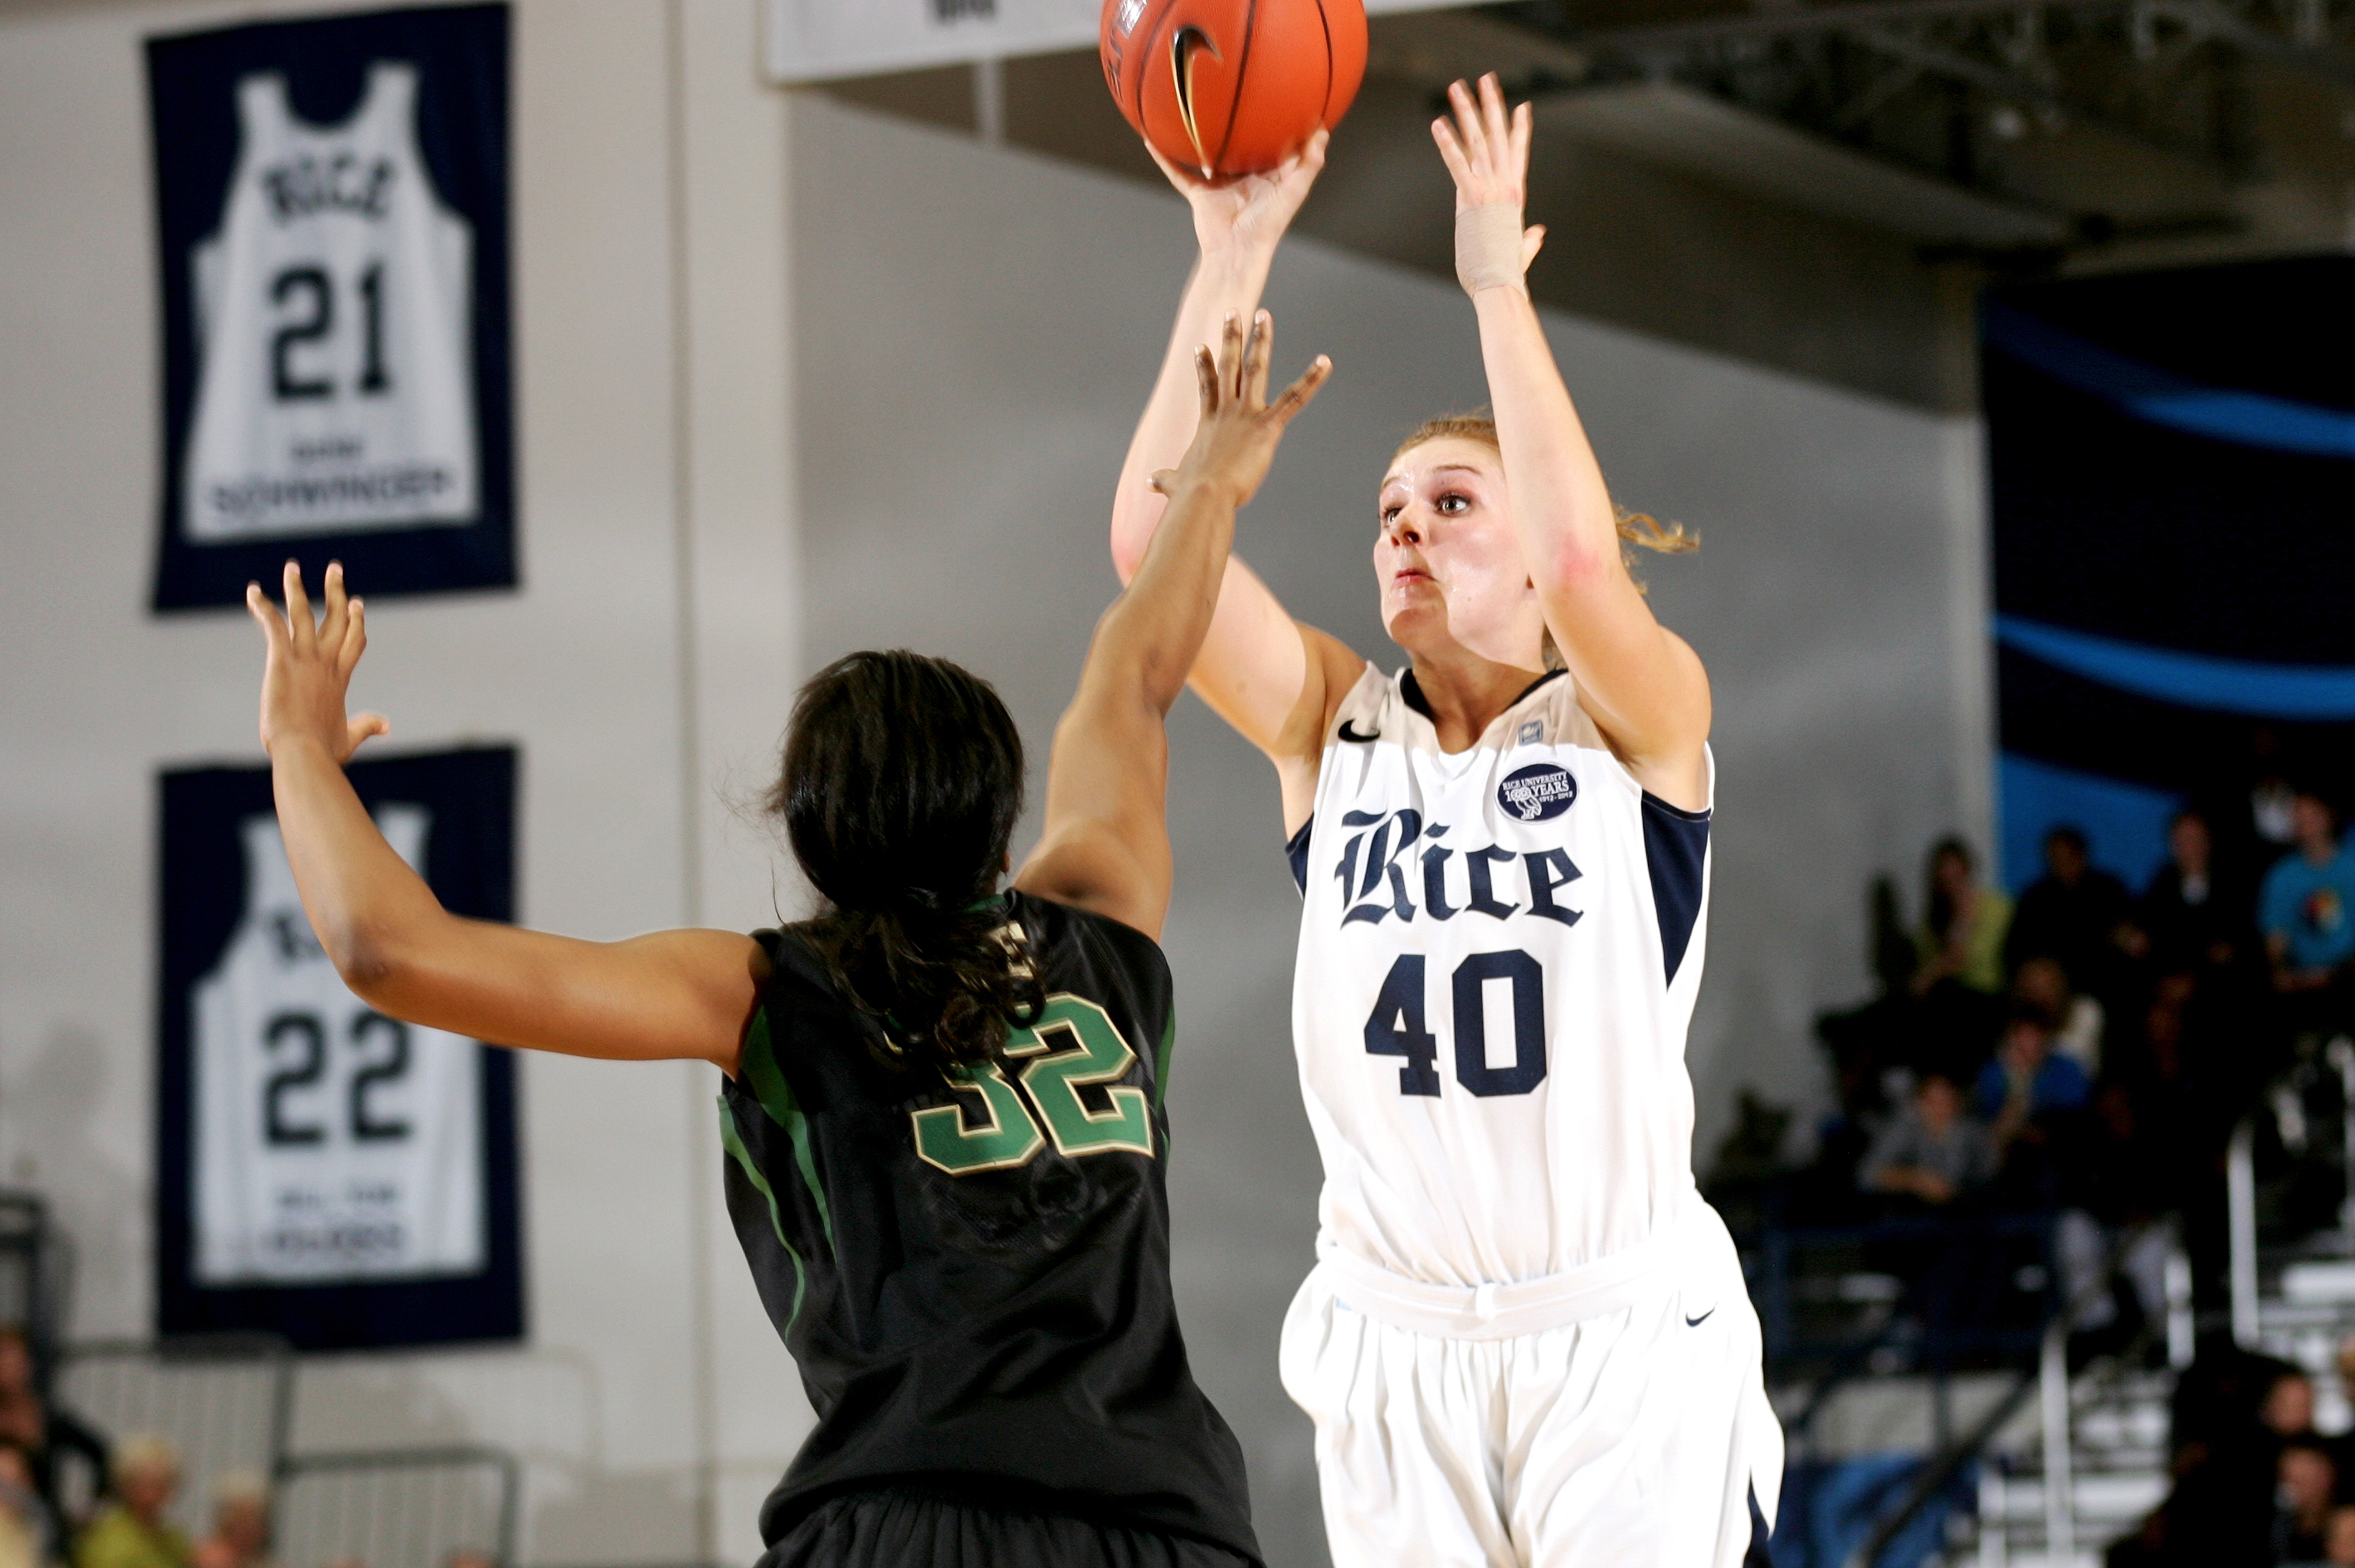 Megan Palmer ranks in the top 5 in points and rebounds for C-USA freshmen